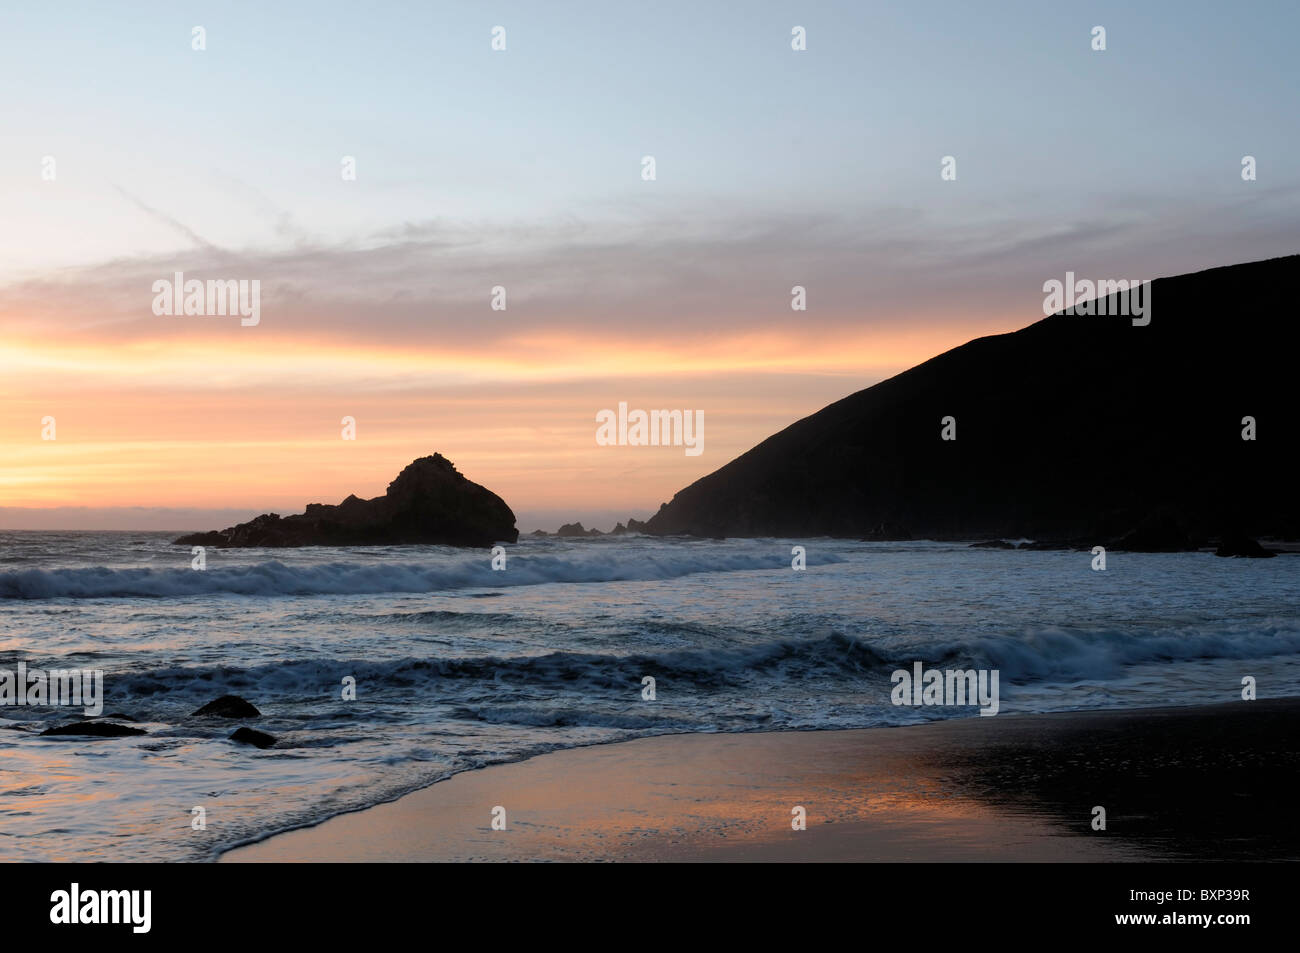 Crashing waves and sea stack at sunset on Pfeiffer beach along the Big Sur coast, Pacific Highway one 1 California - Stock Image